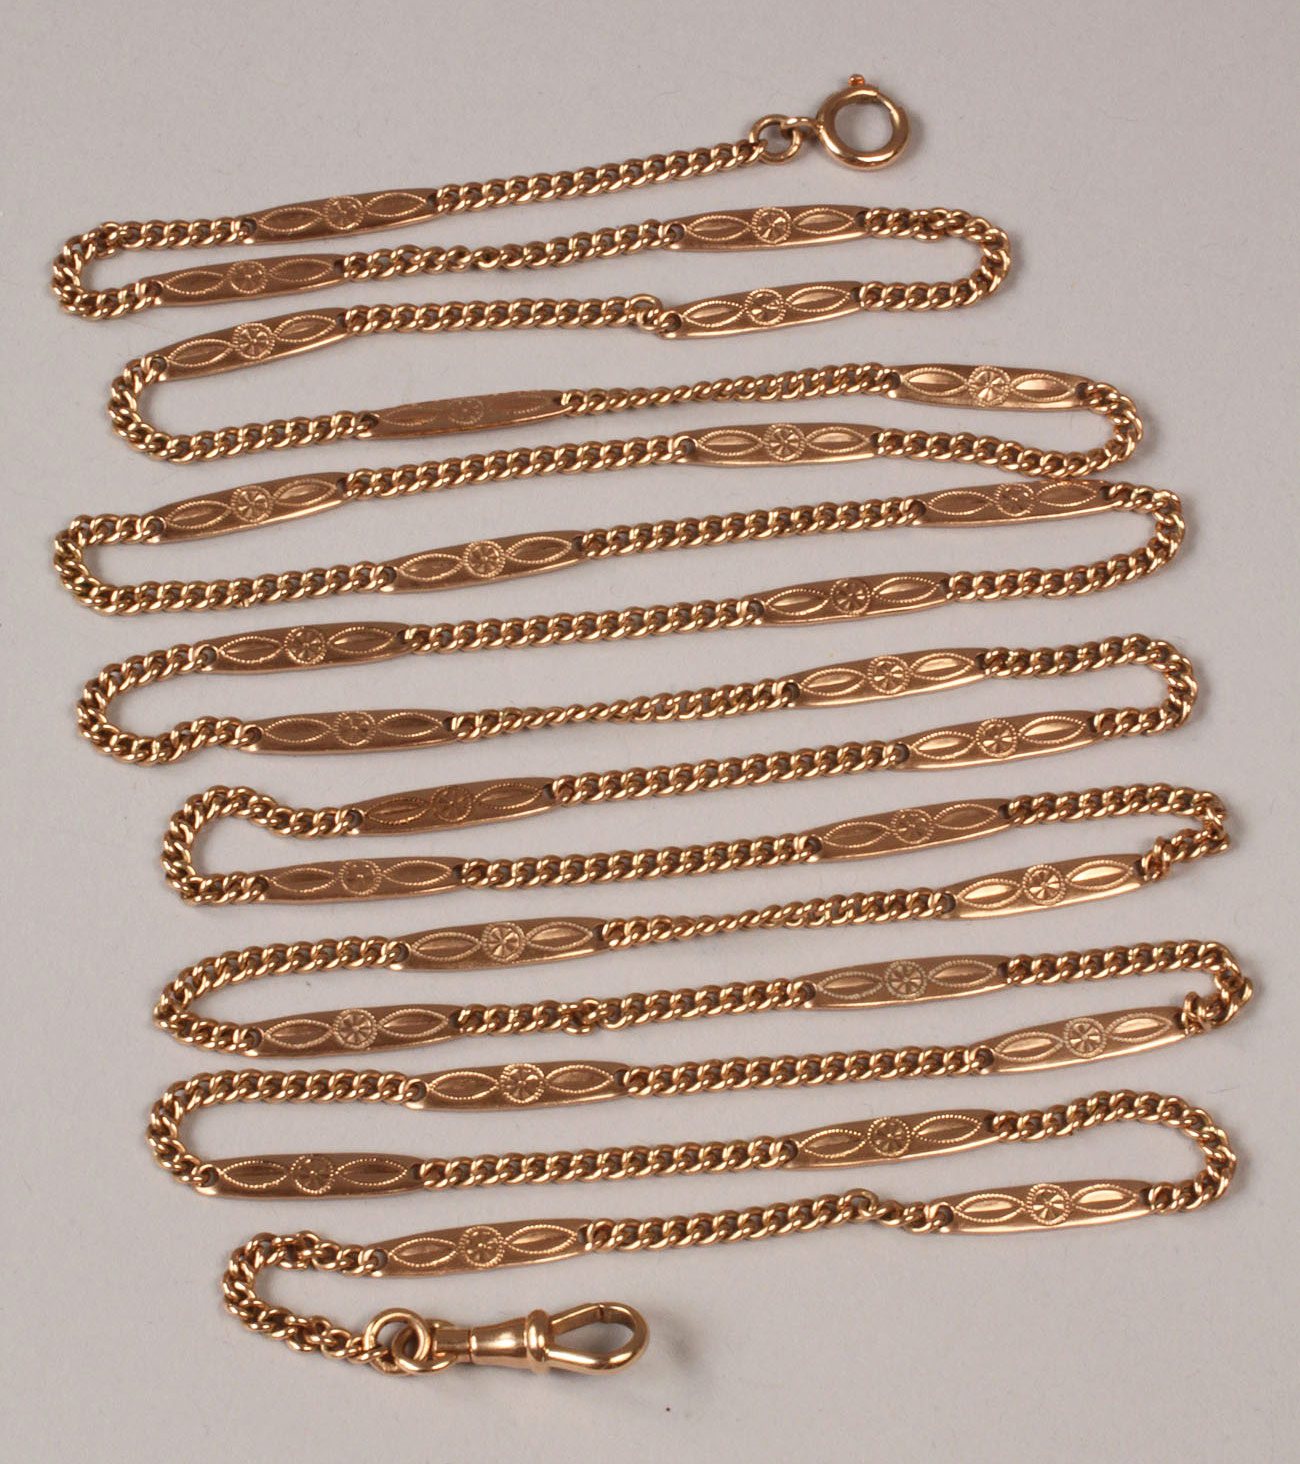 98: 14K Gold Watch Chain, engraved links